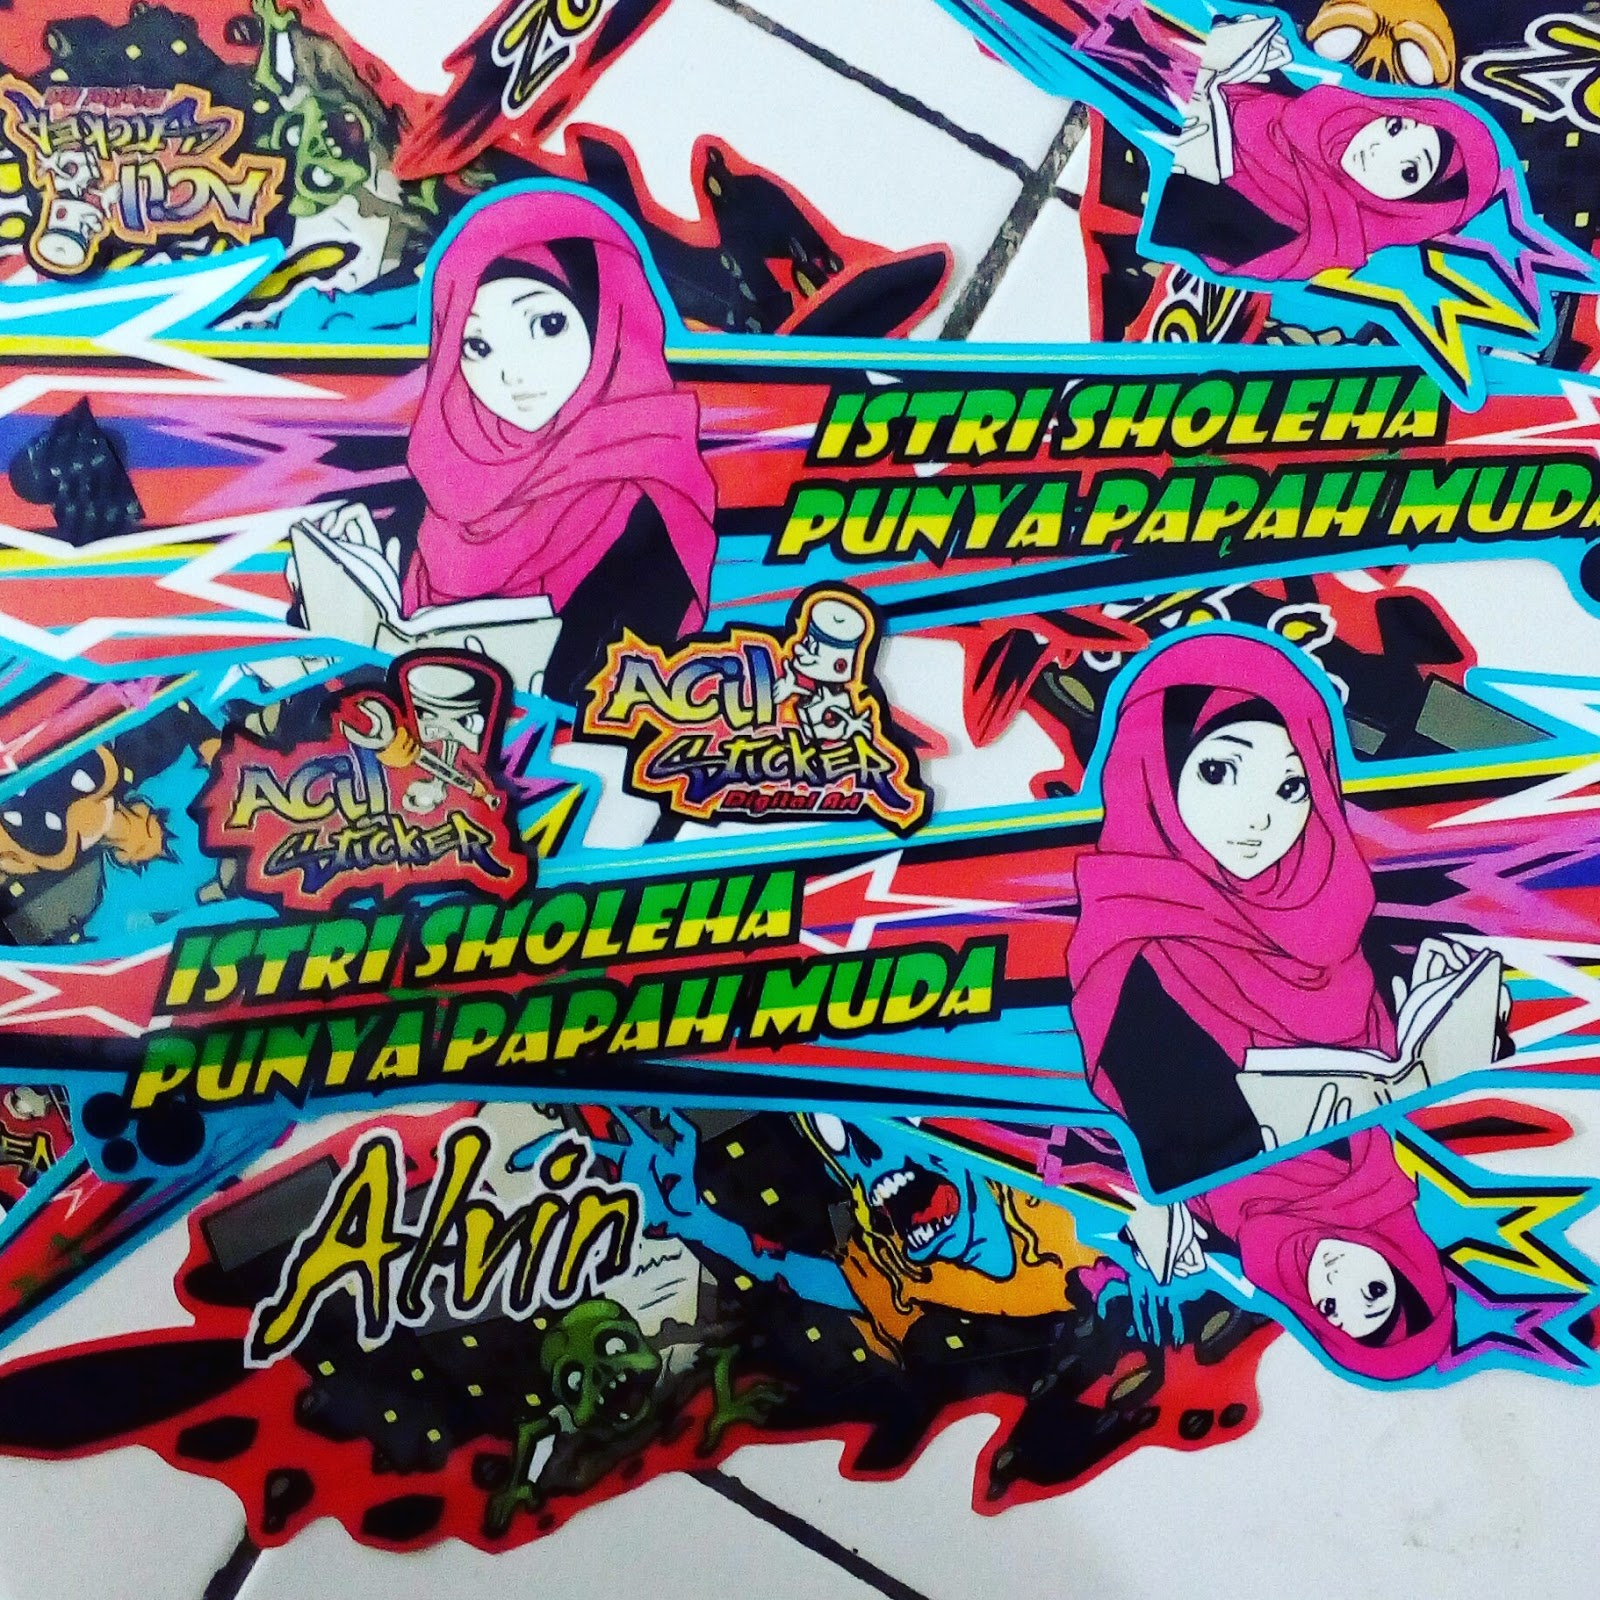 Desain drag racing custom stickers